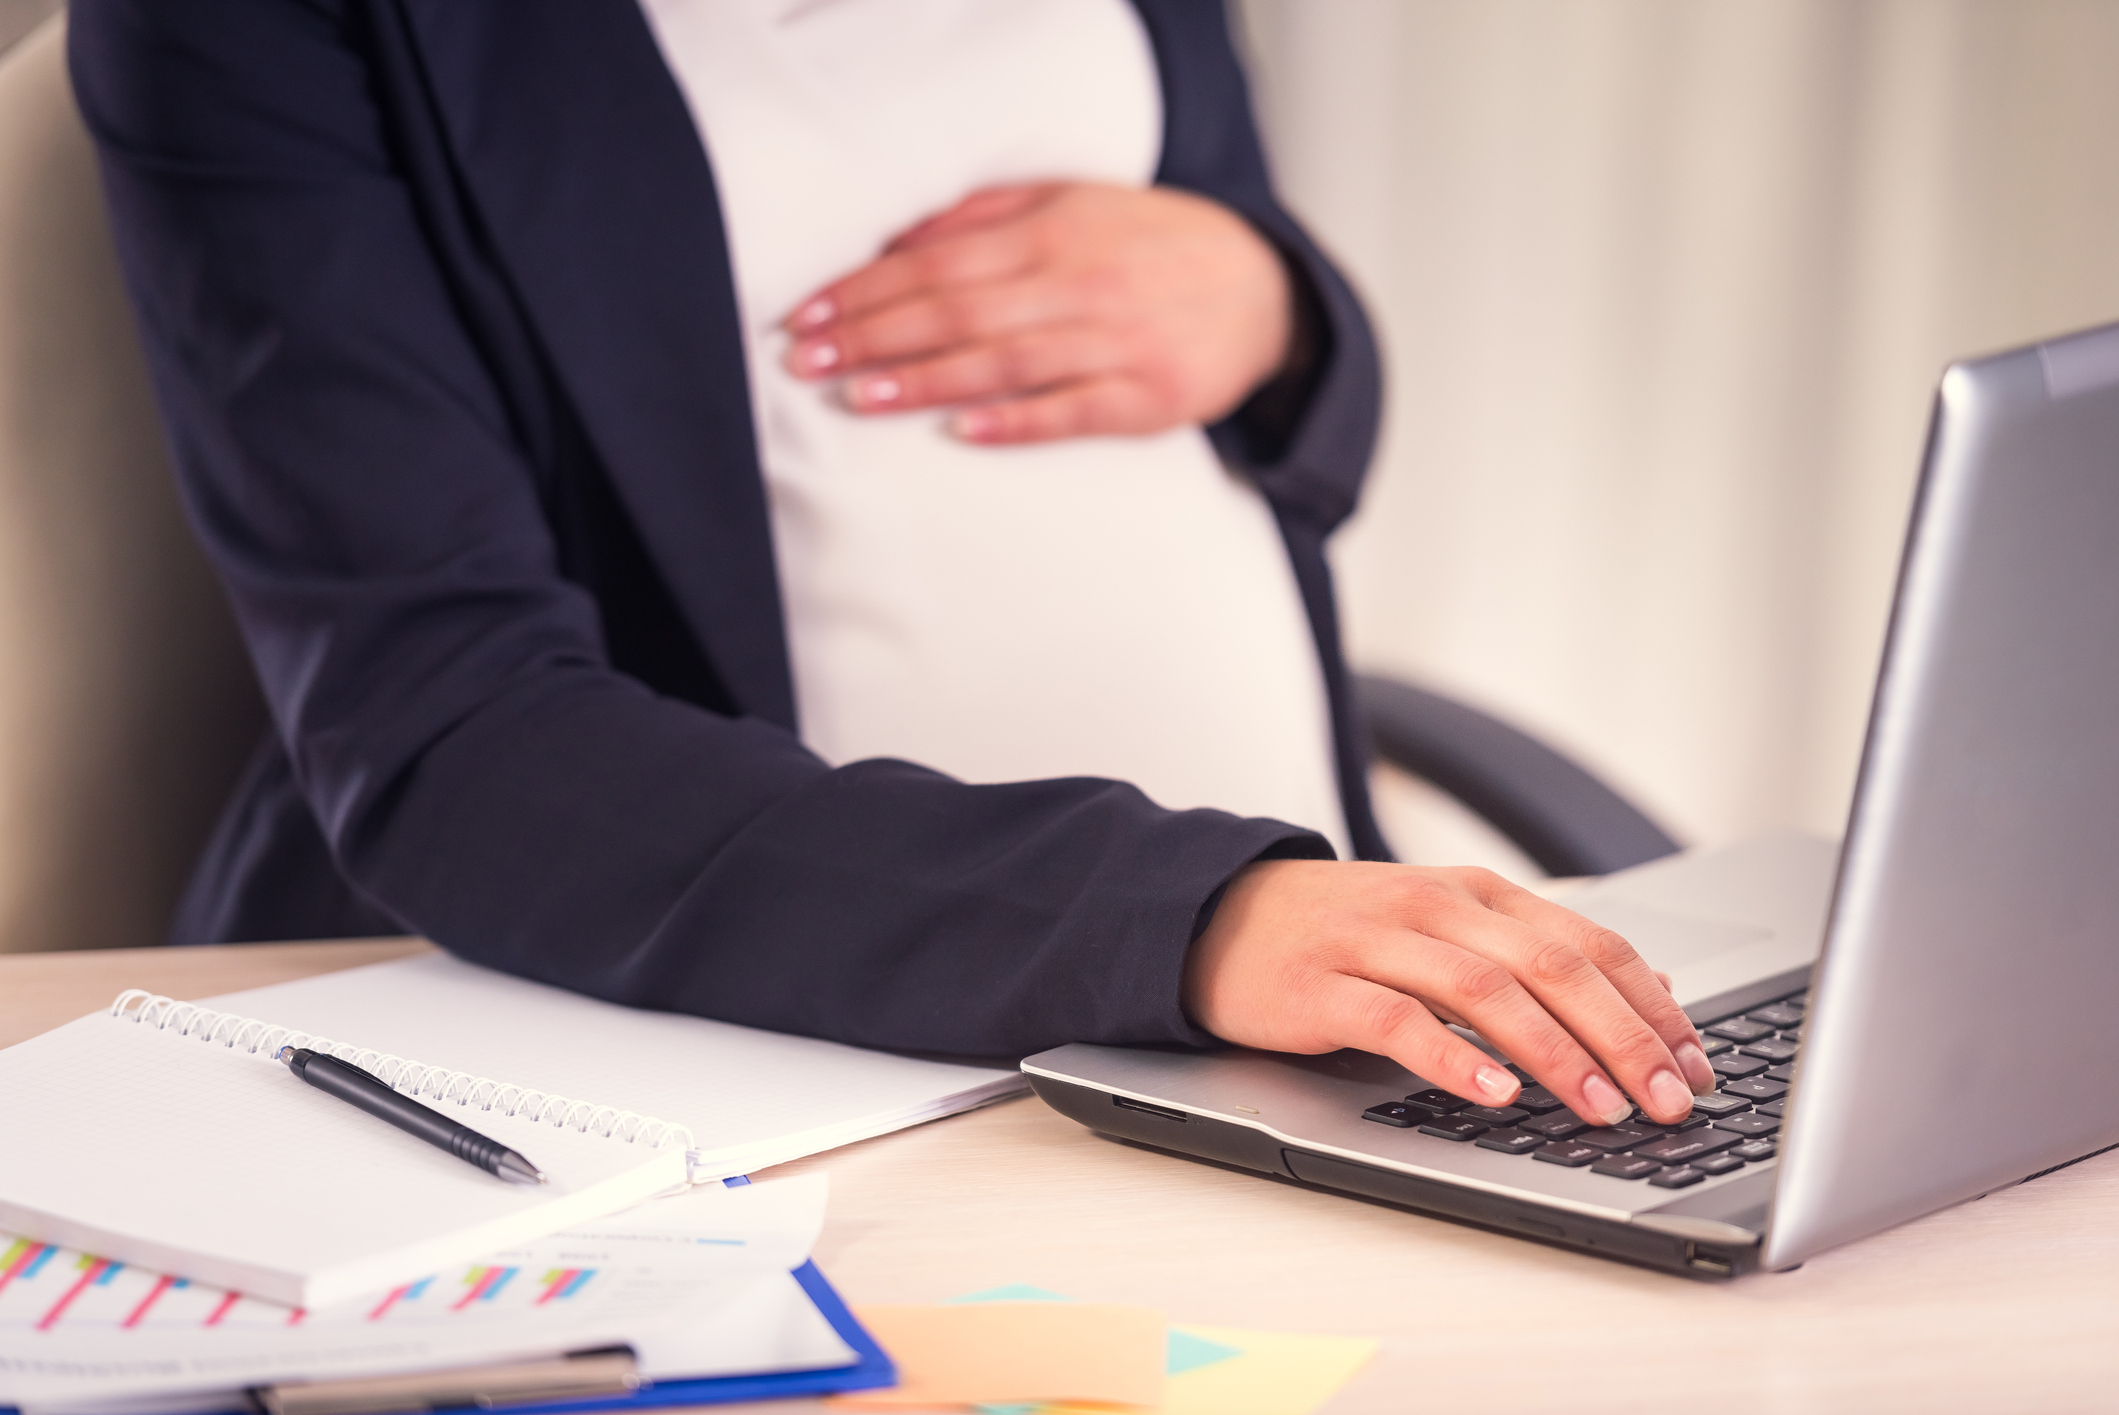 Pregnant woman with hand on stomach working at a computer